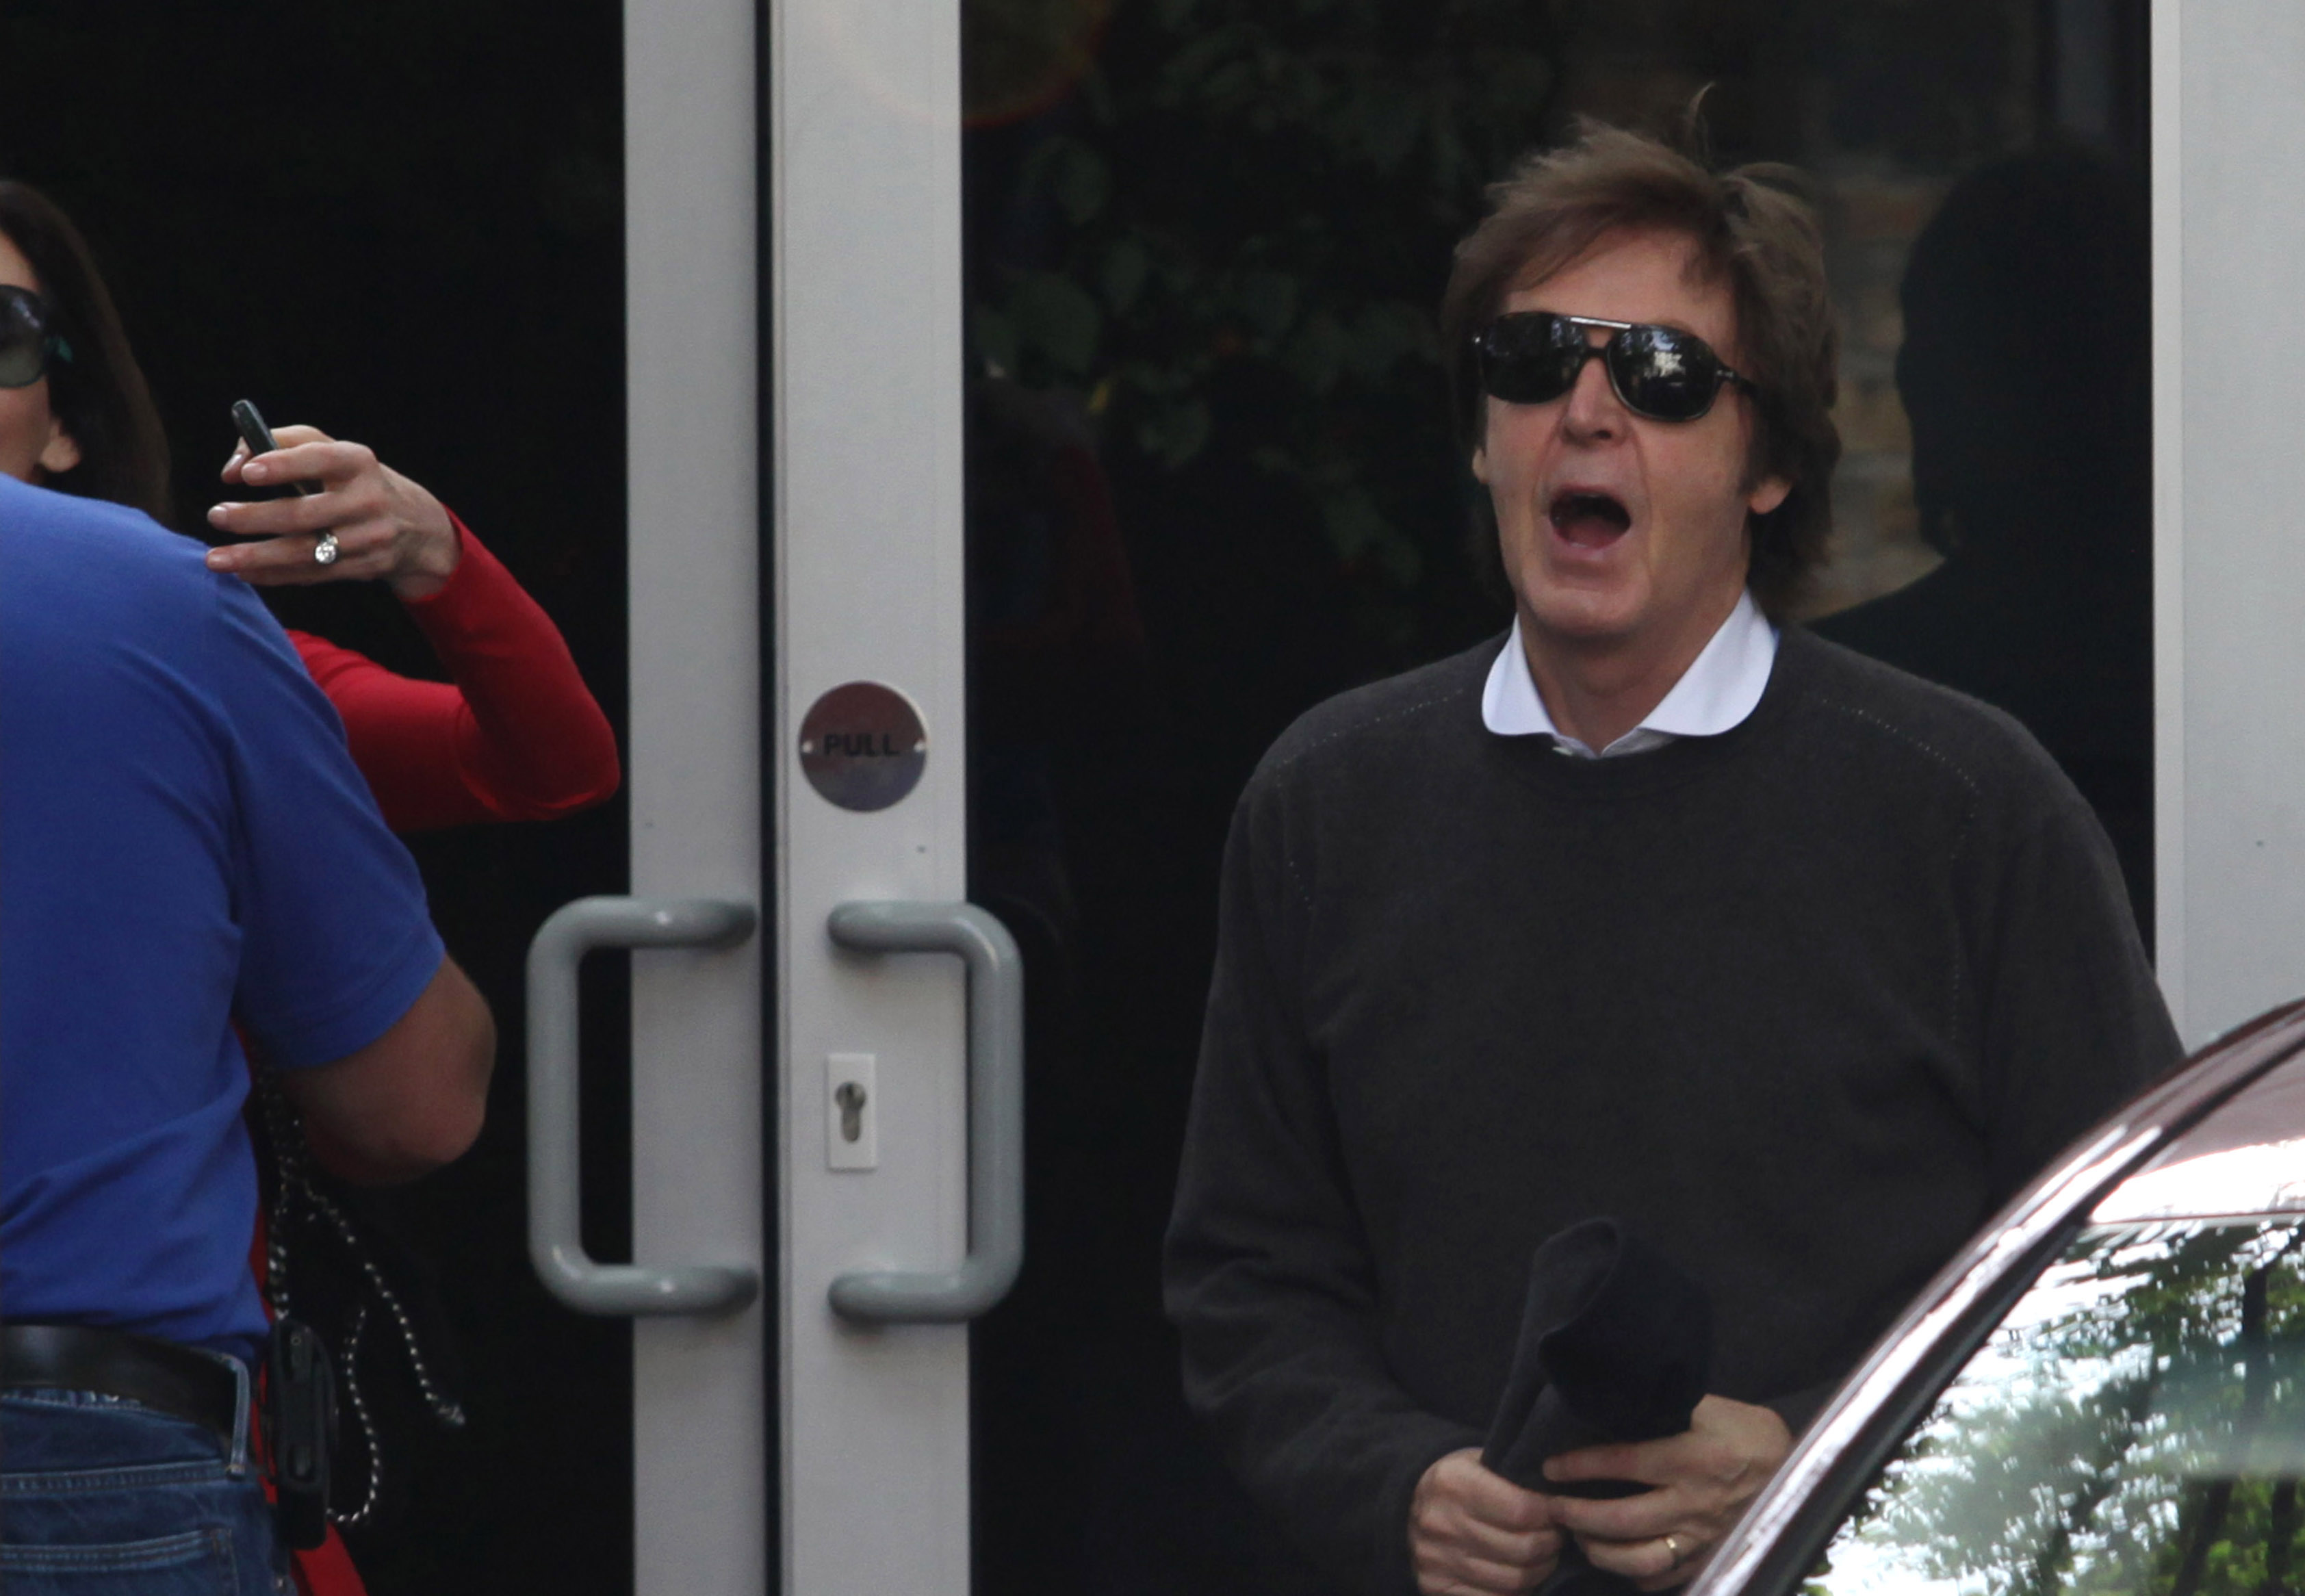 Paul McCartney leaves for his honeymoon with Nancy Shevell.